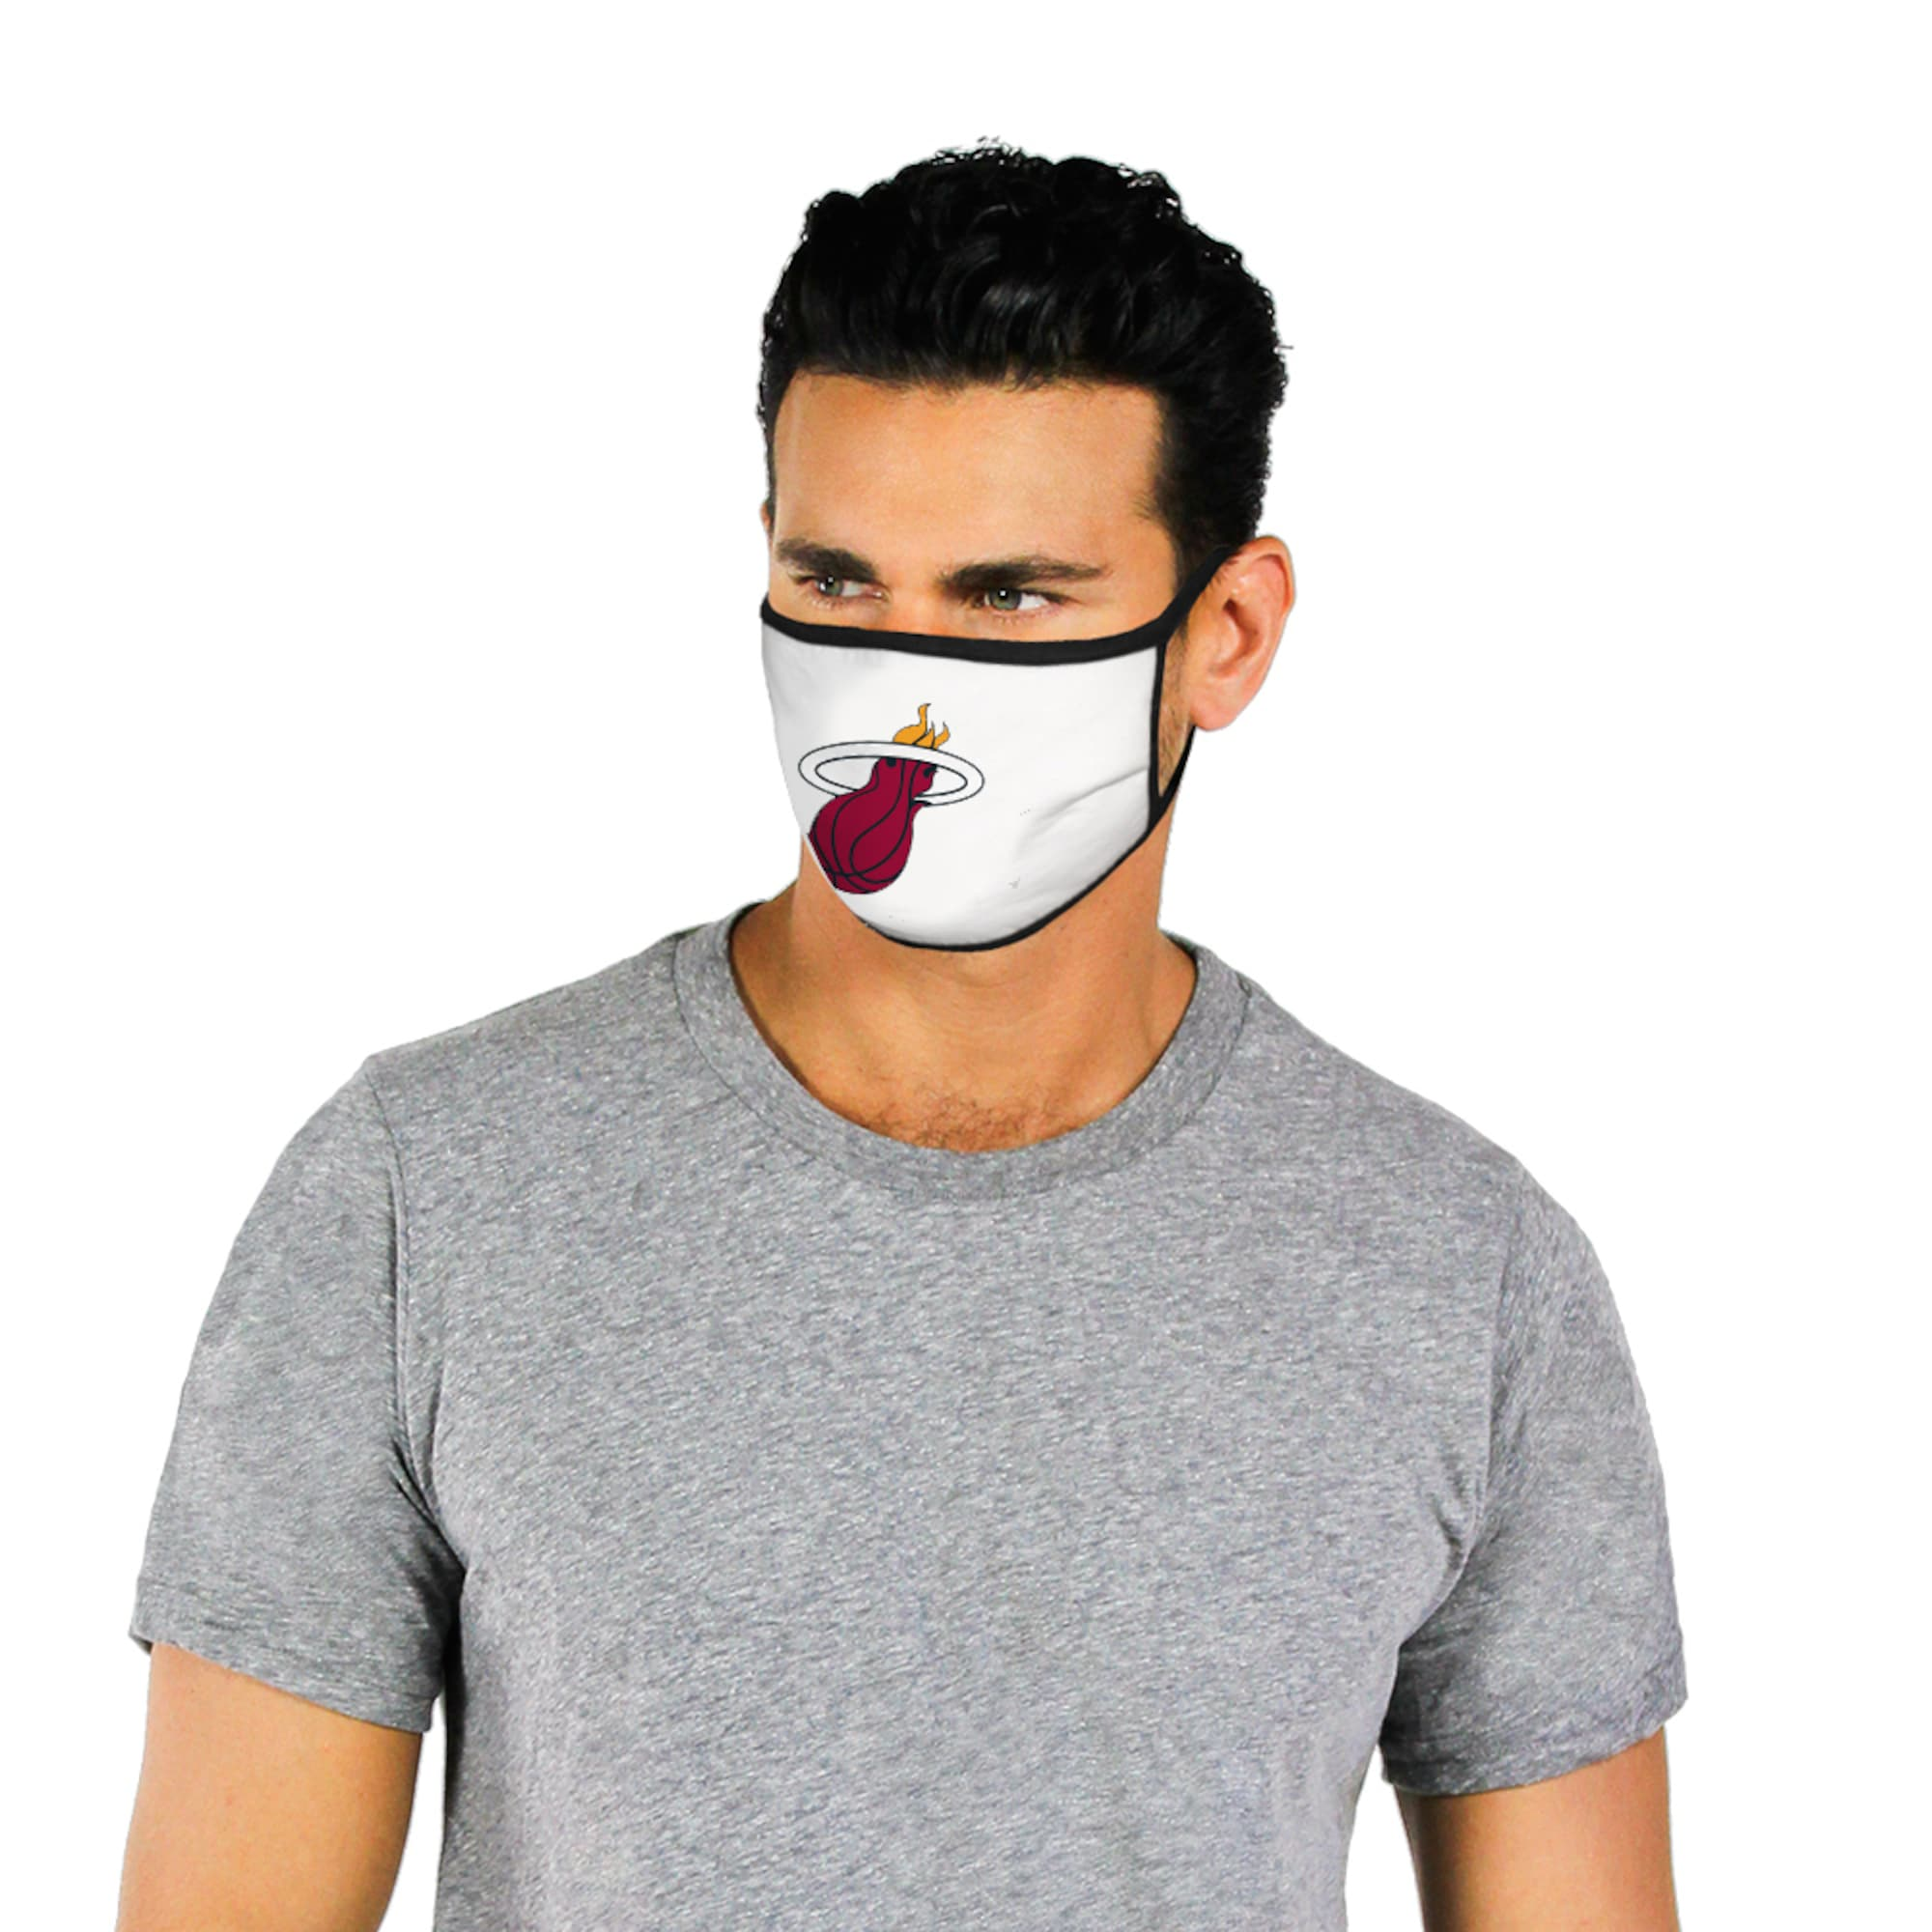 Support Your Miami Heat For Charity With These Nba Face Coverings